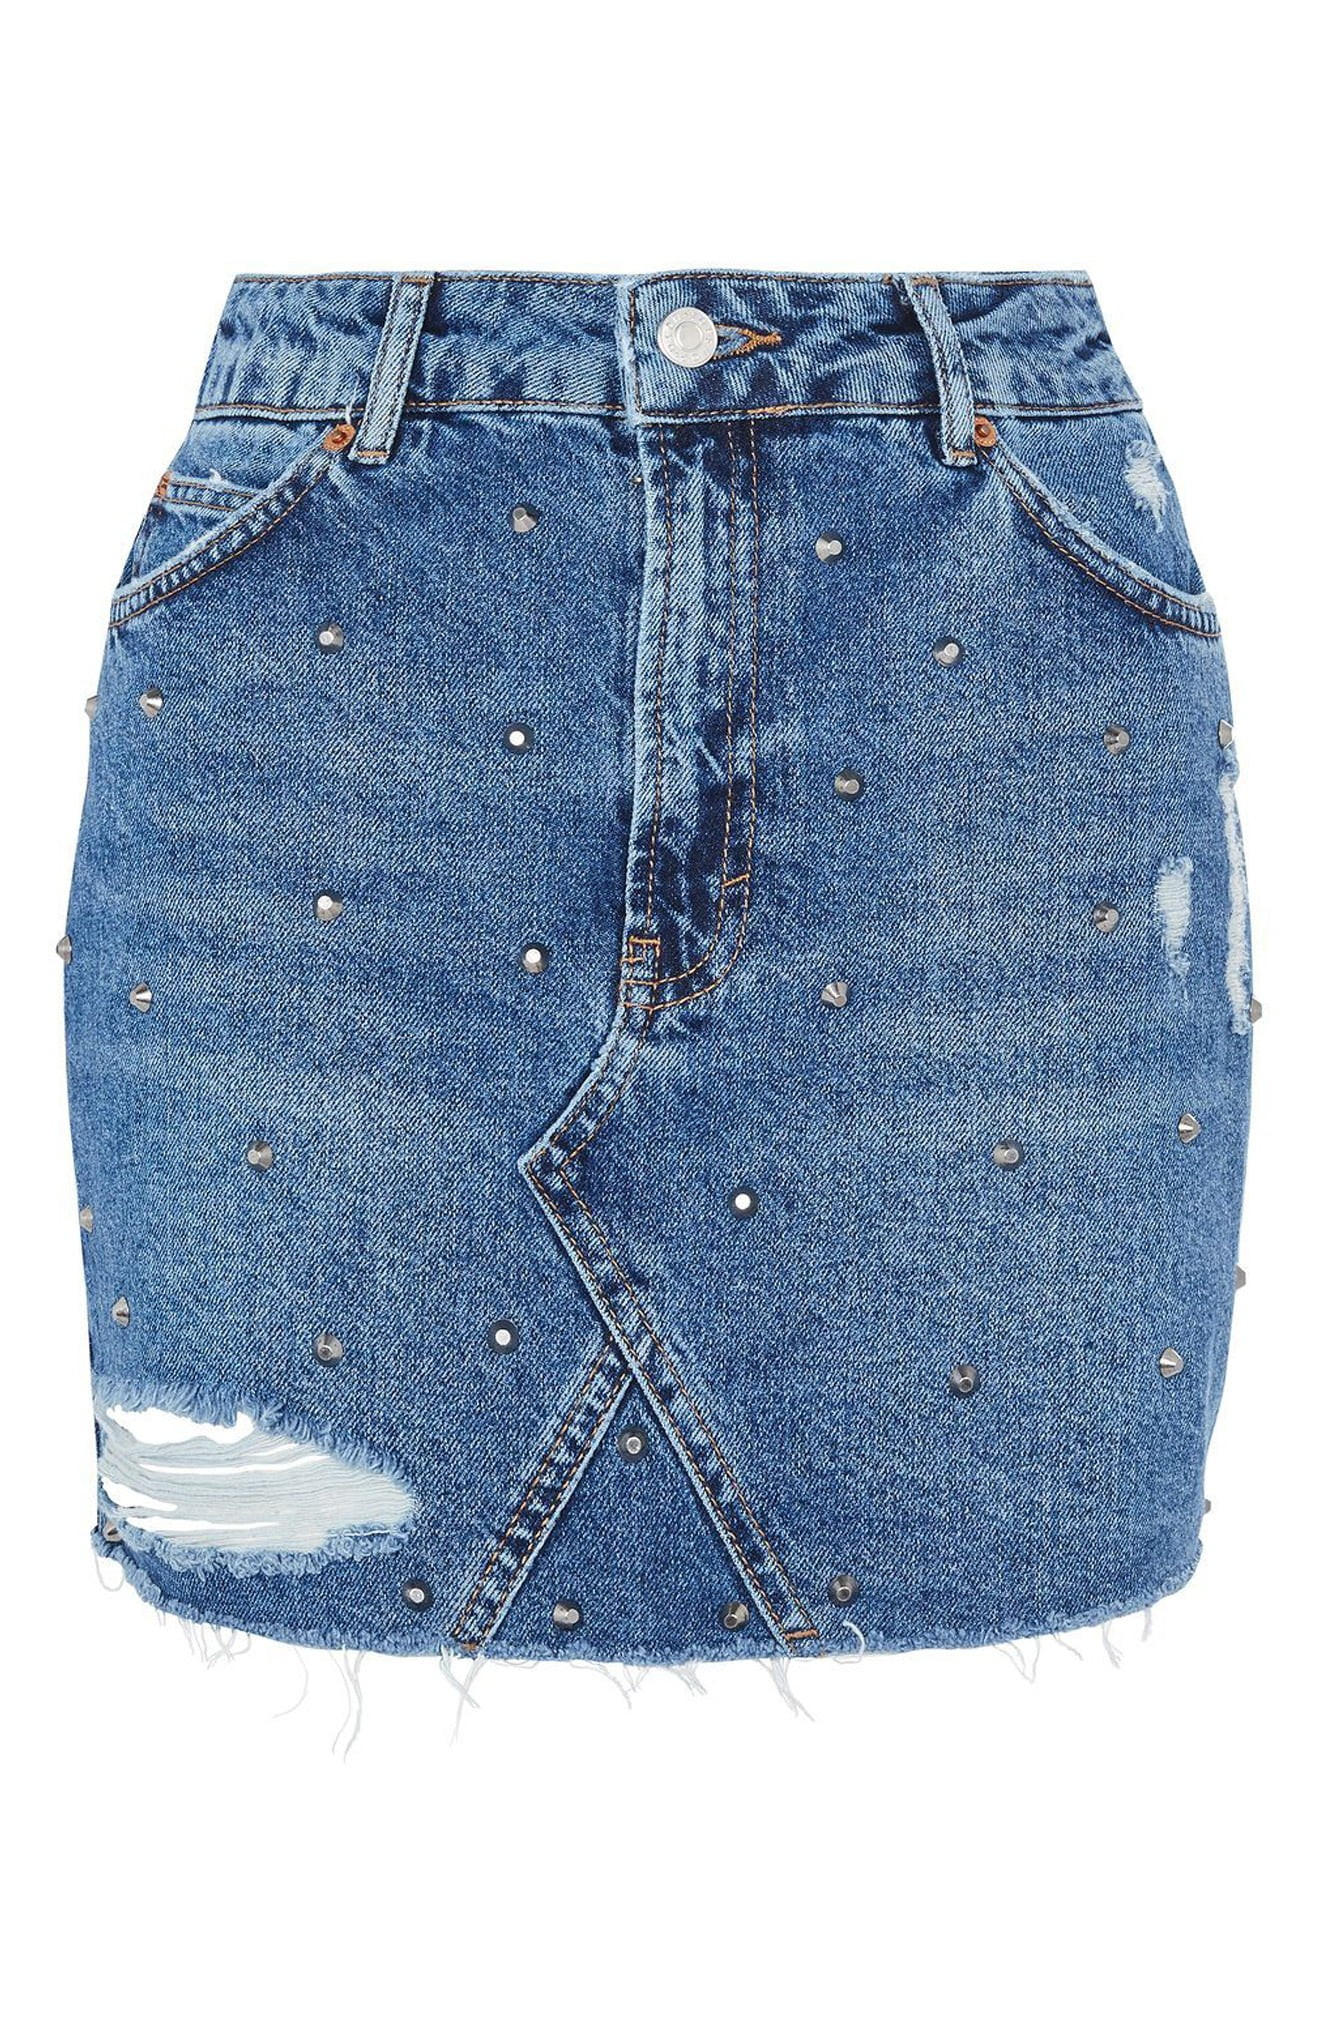 c0688ce1ac 5 Denim Skirts Under $100 | How to Rock a Jean Skirt | Life Lutzurious